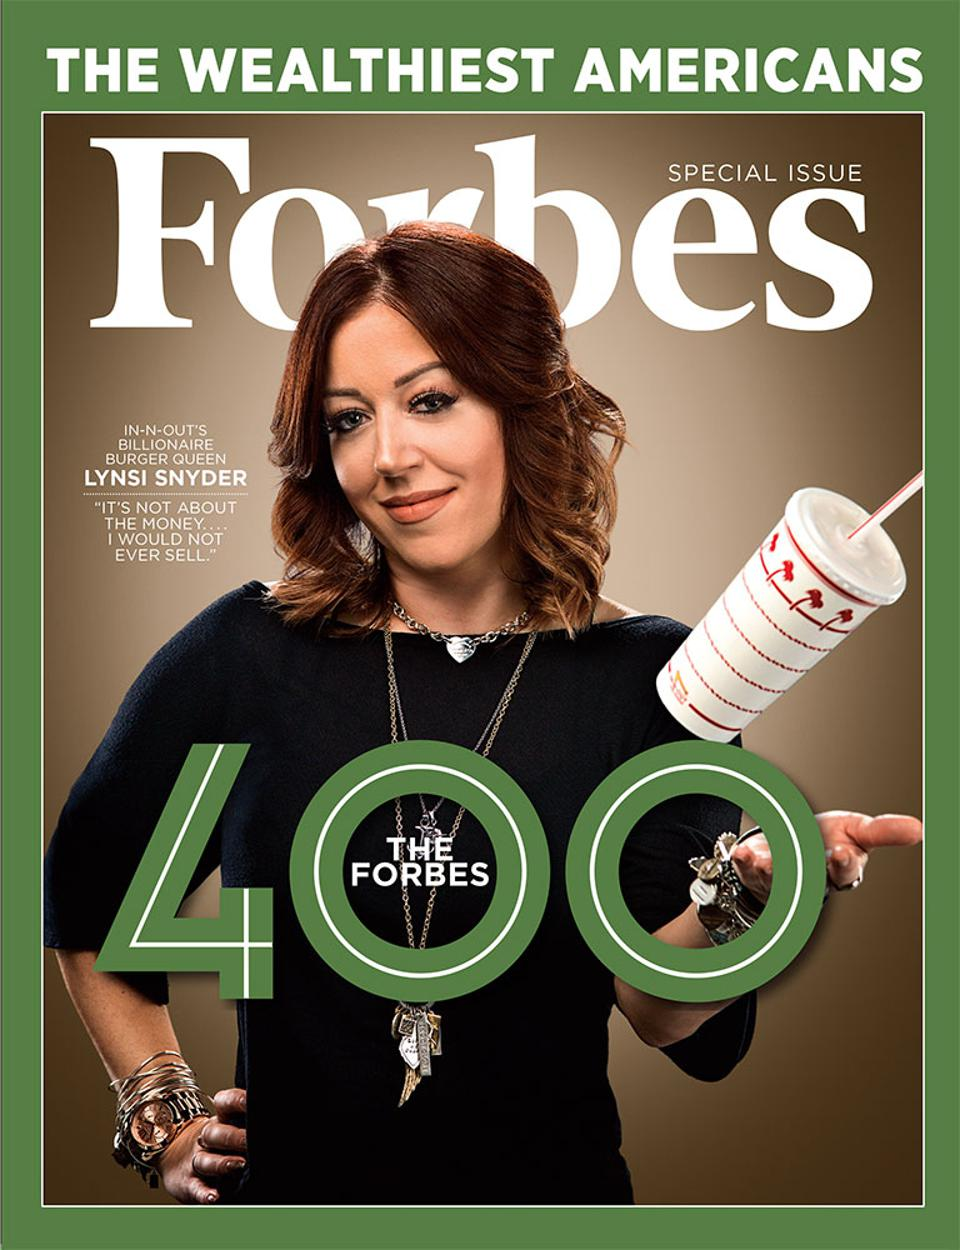 The October 31, 2018 issue of Forbes featuring In-N-Out's Lynsi Snyder.